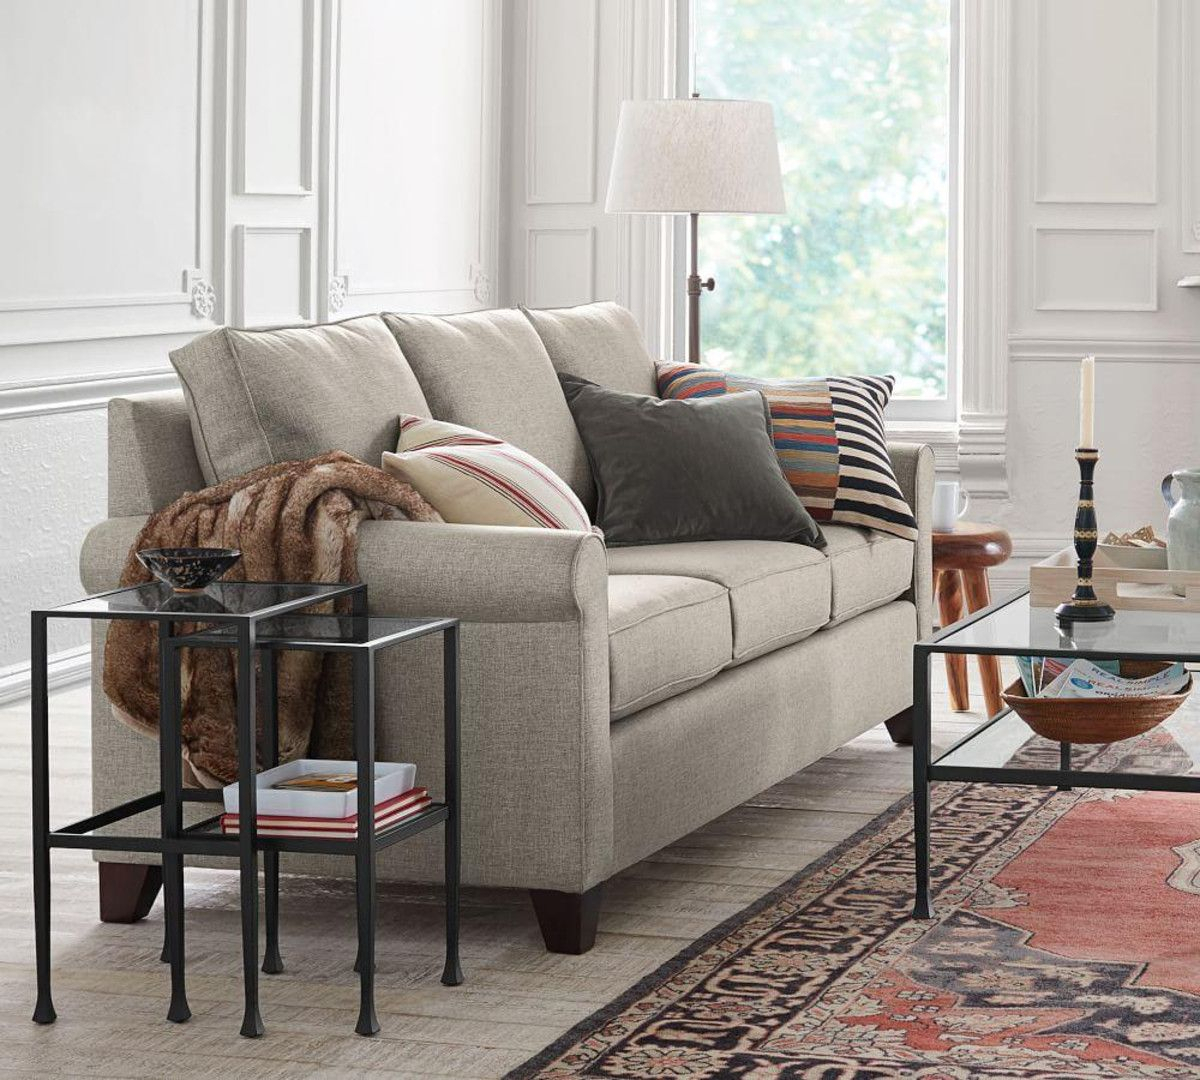 Cameron Upholstered Sofa – Oatmeal (224 Cm) | Lil Glen | Pinterest Within Cameron Sofa Chairs (View 18 of 25)